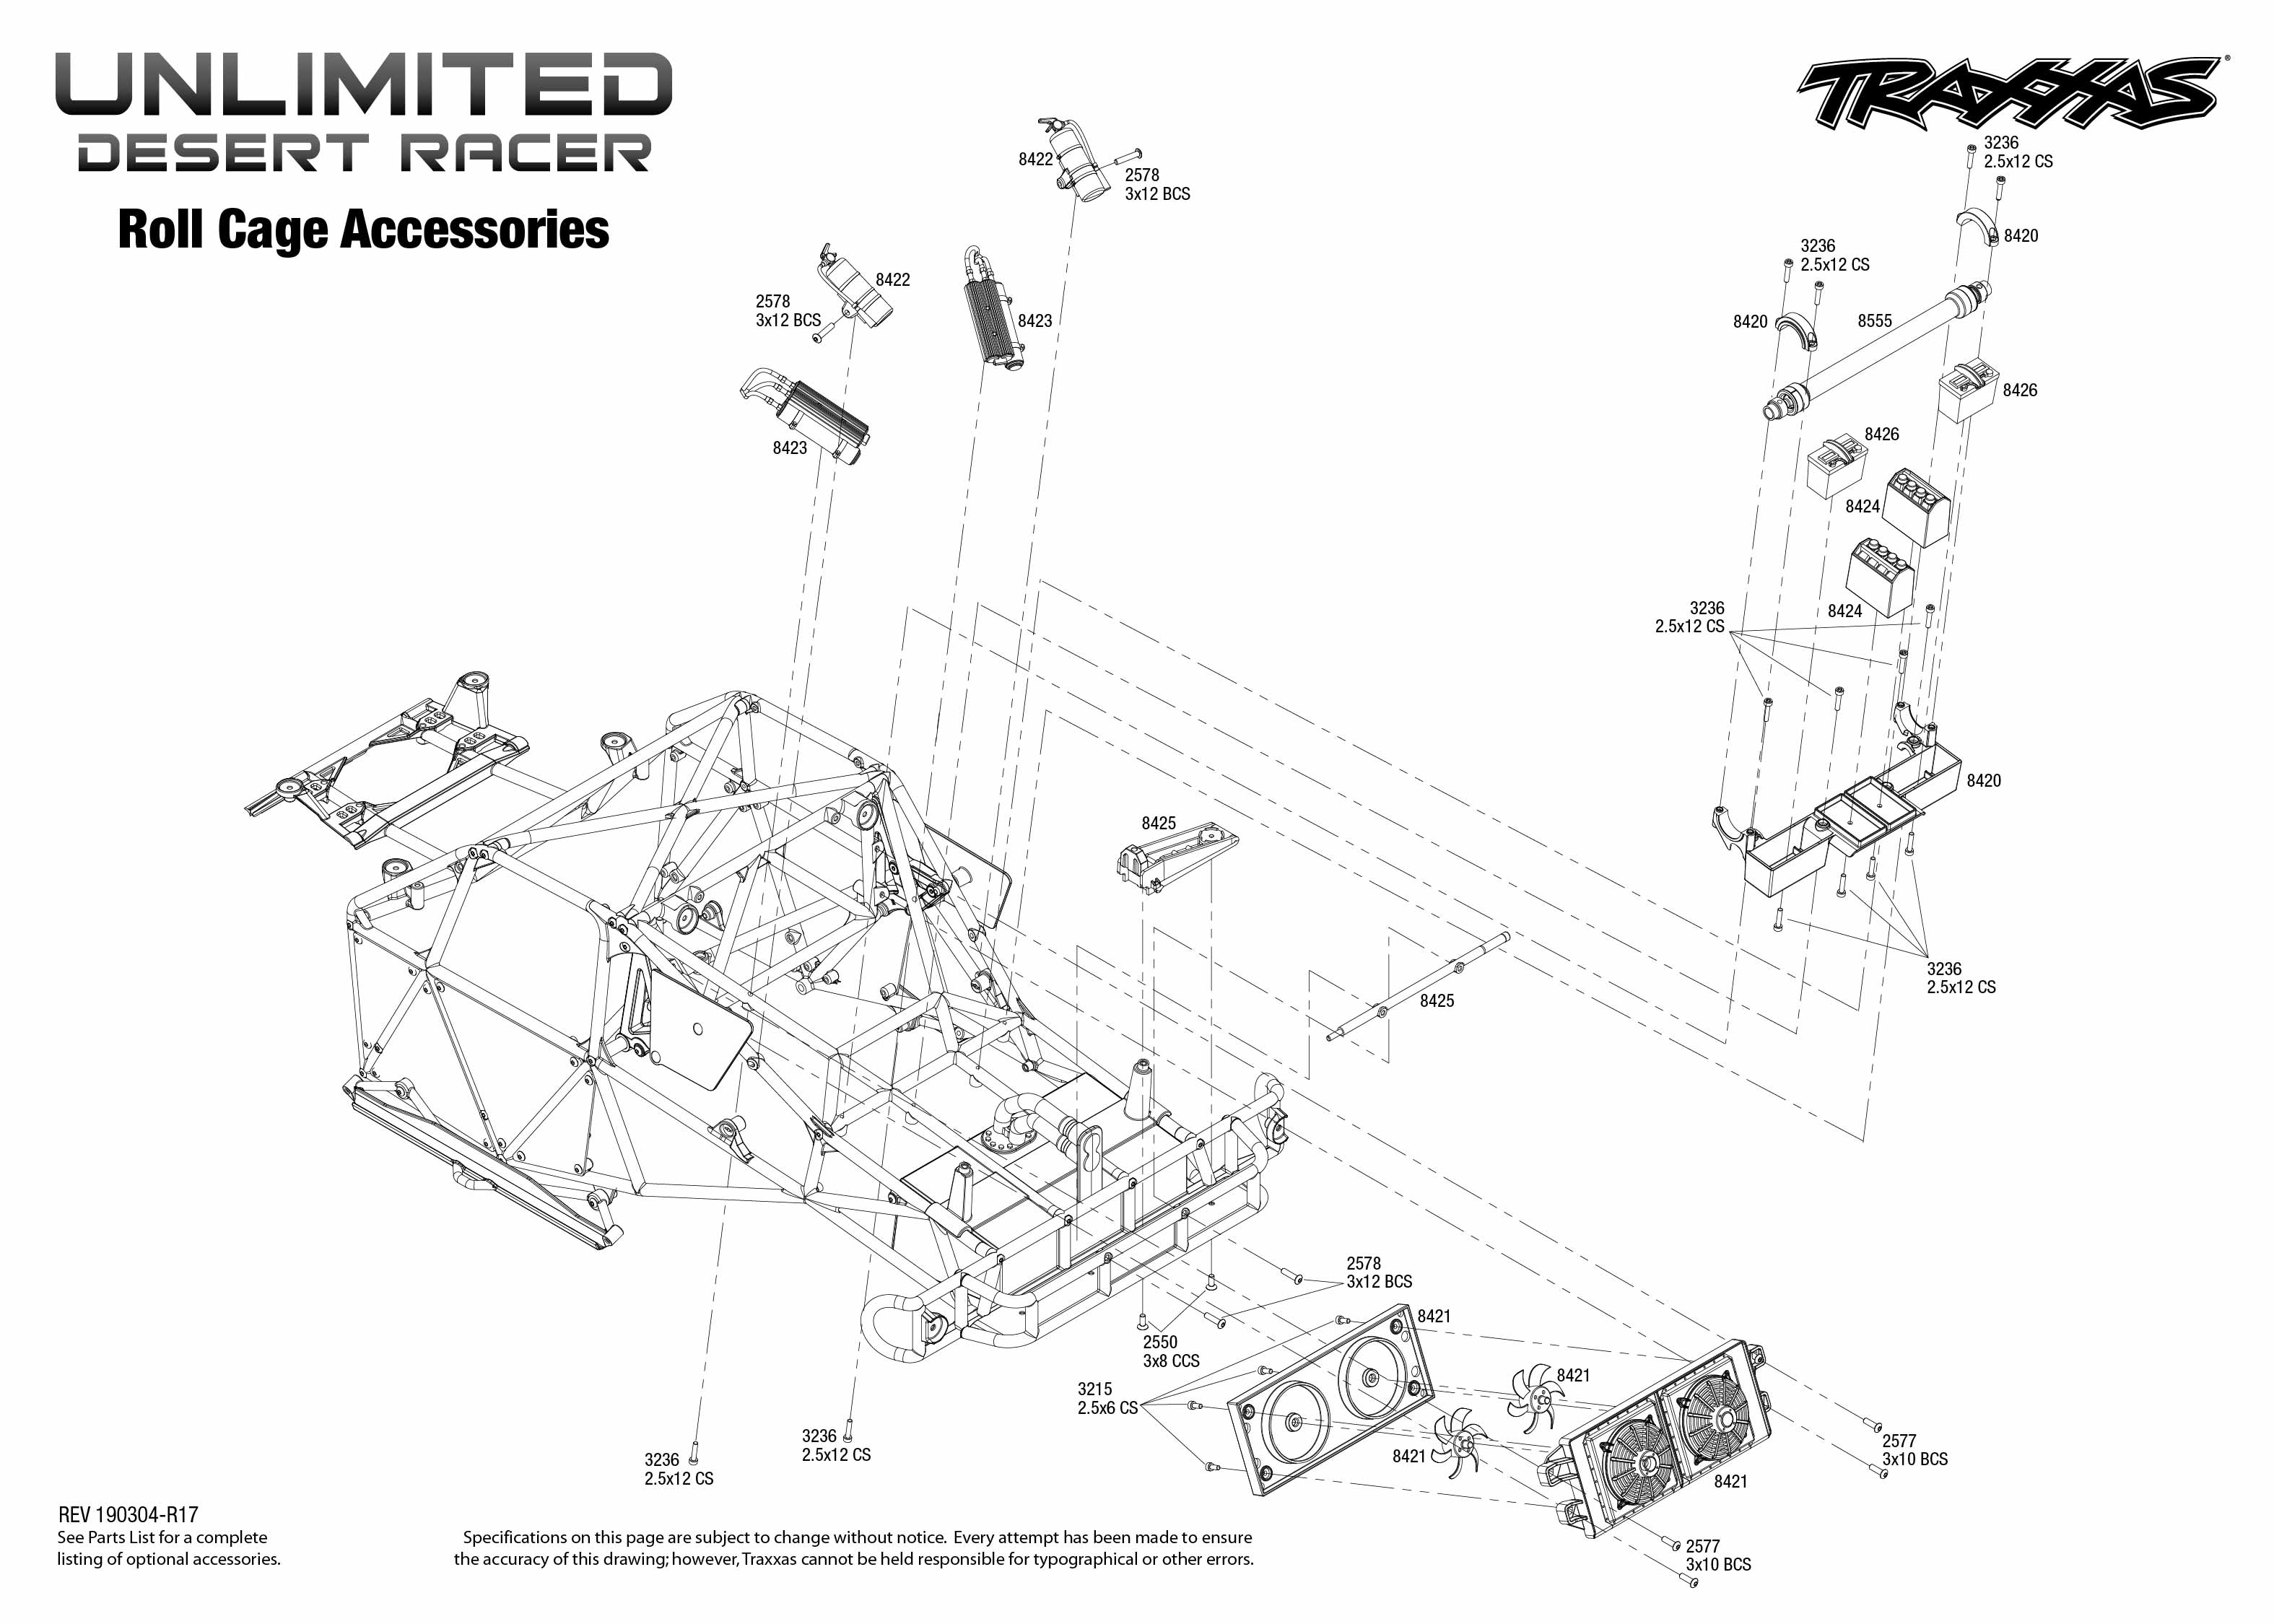 Unlimited Desert Racer 4 Roll Cage Accessories